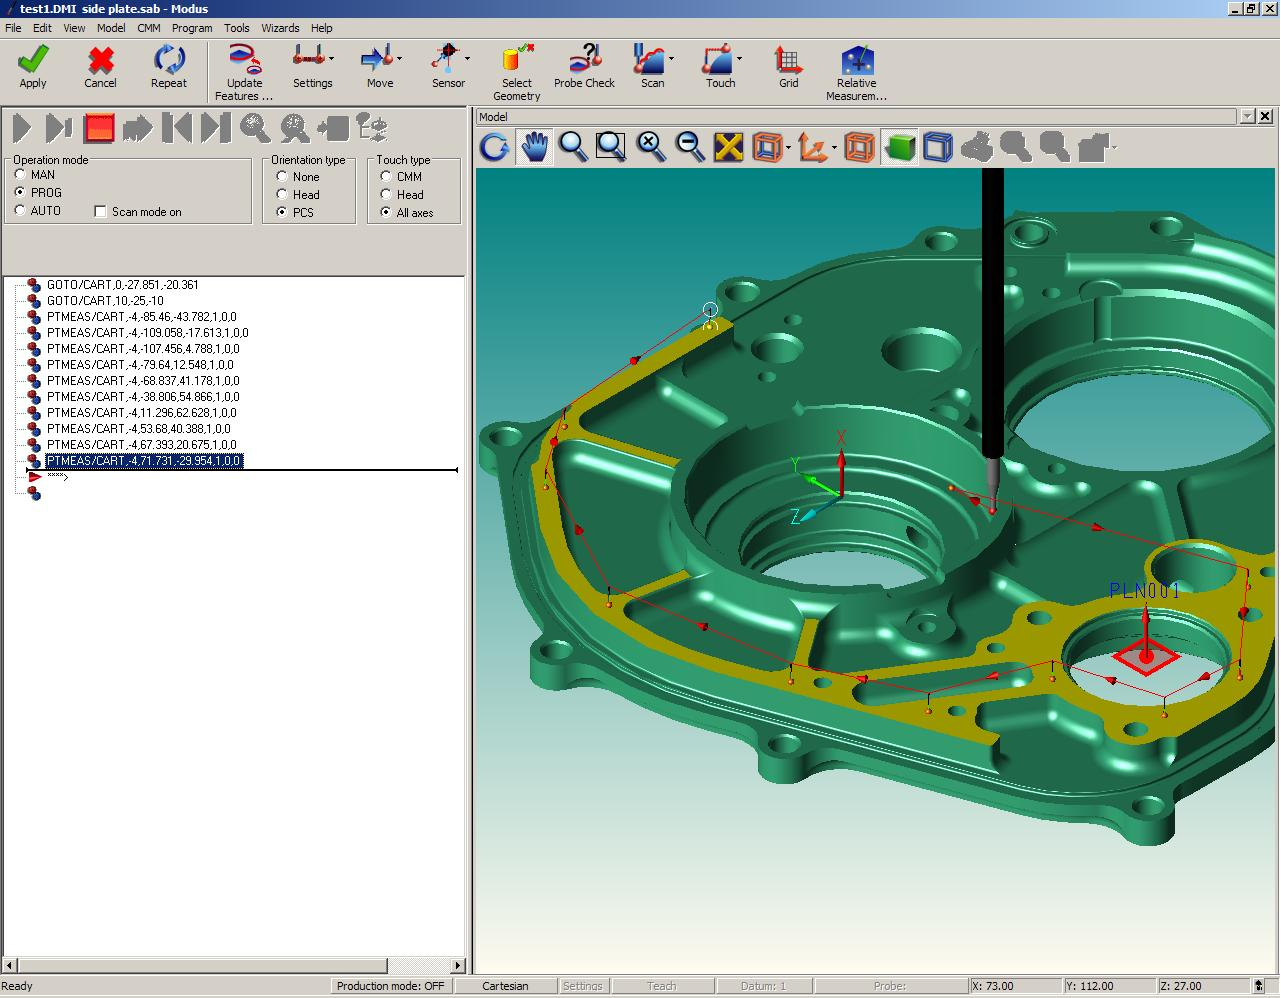 New MODUS™ CMM software supports powerful 5 axis measurement